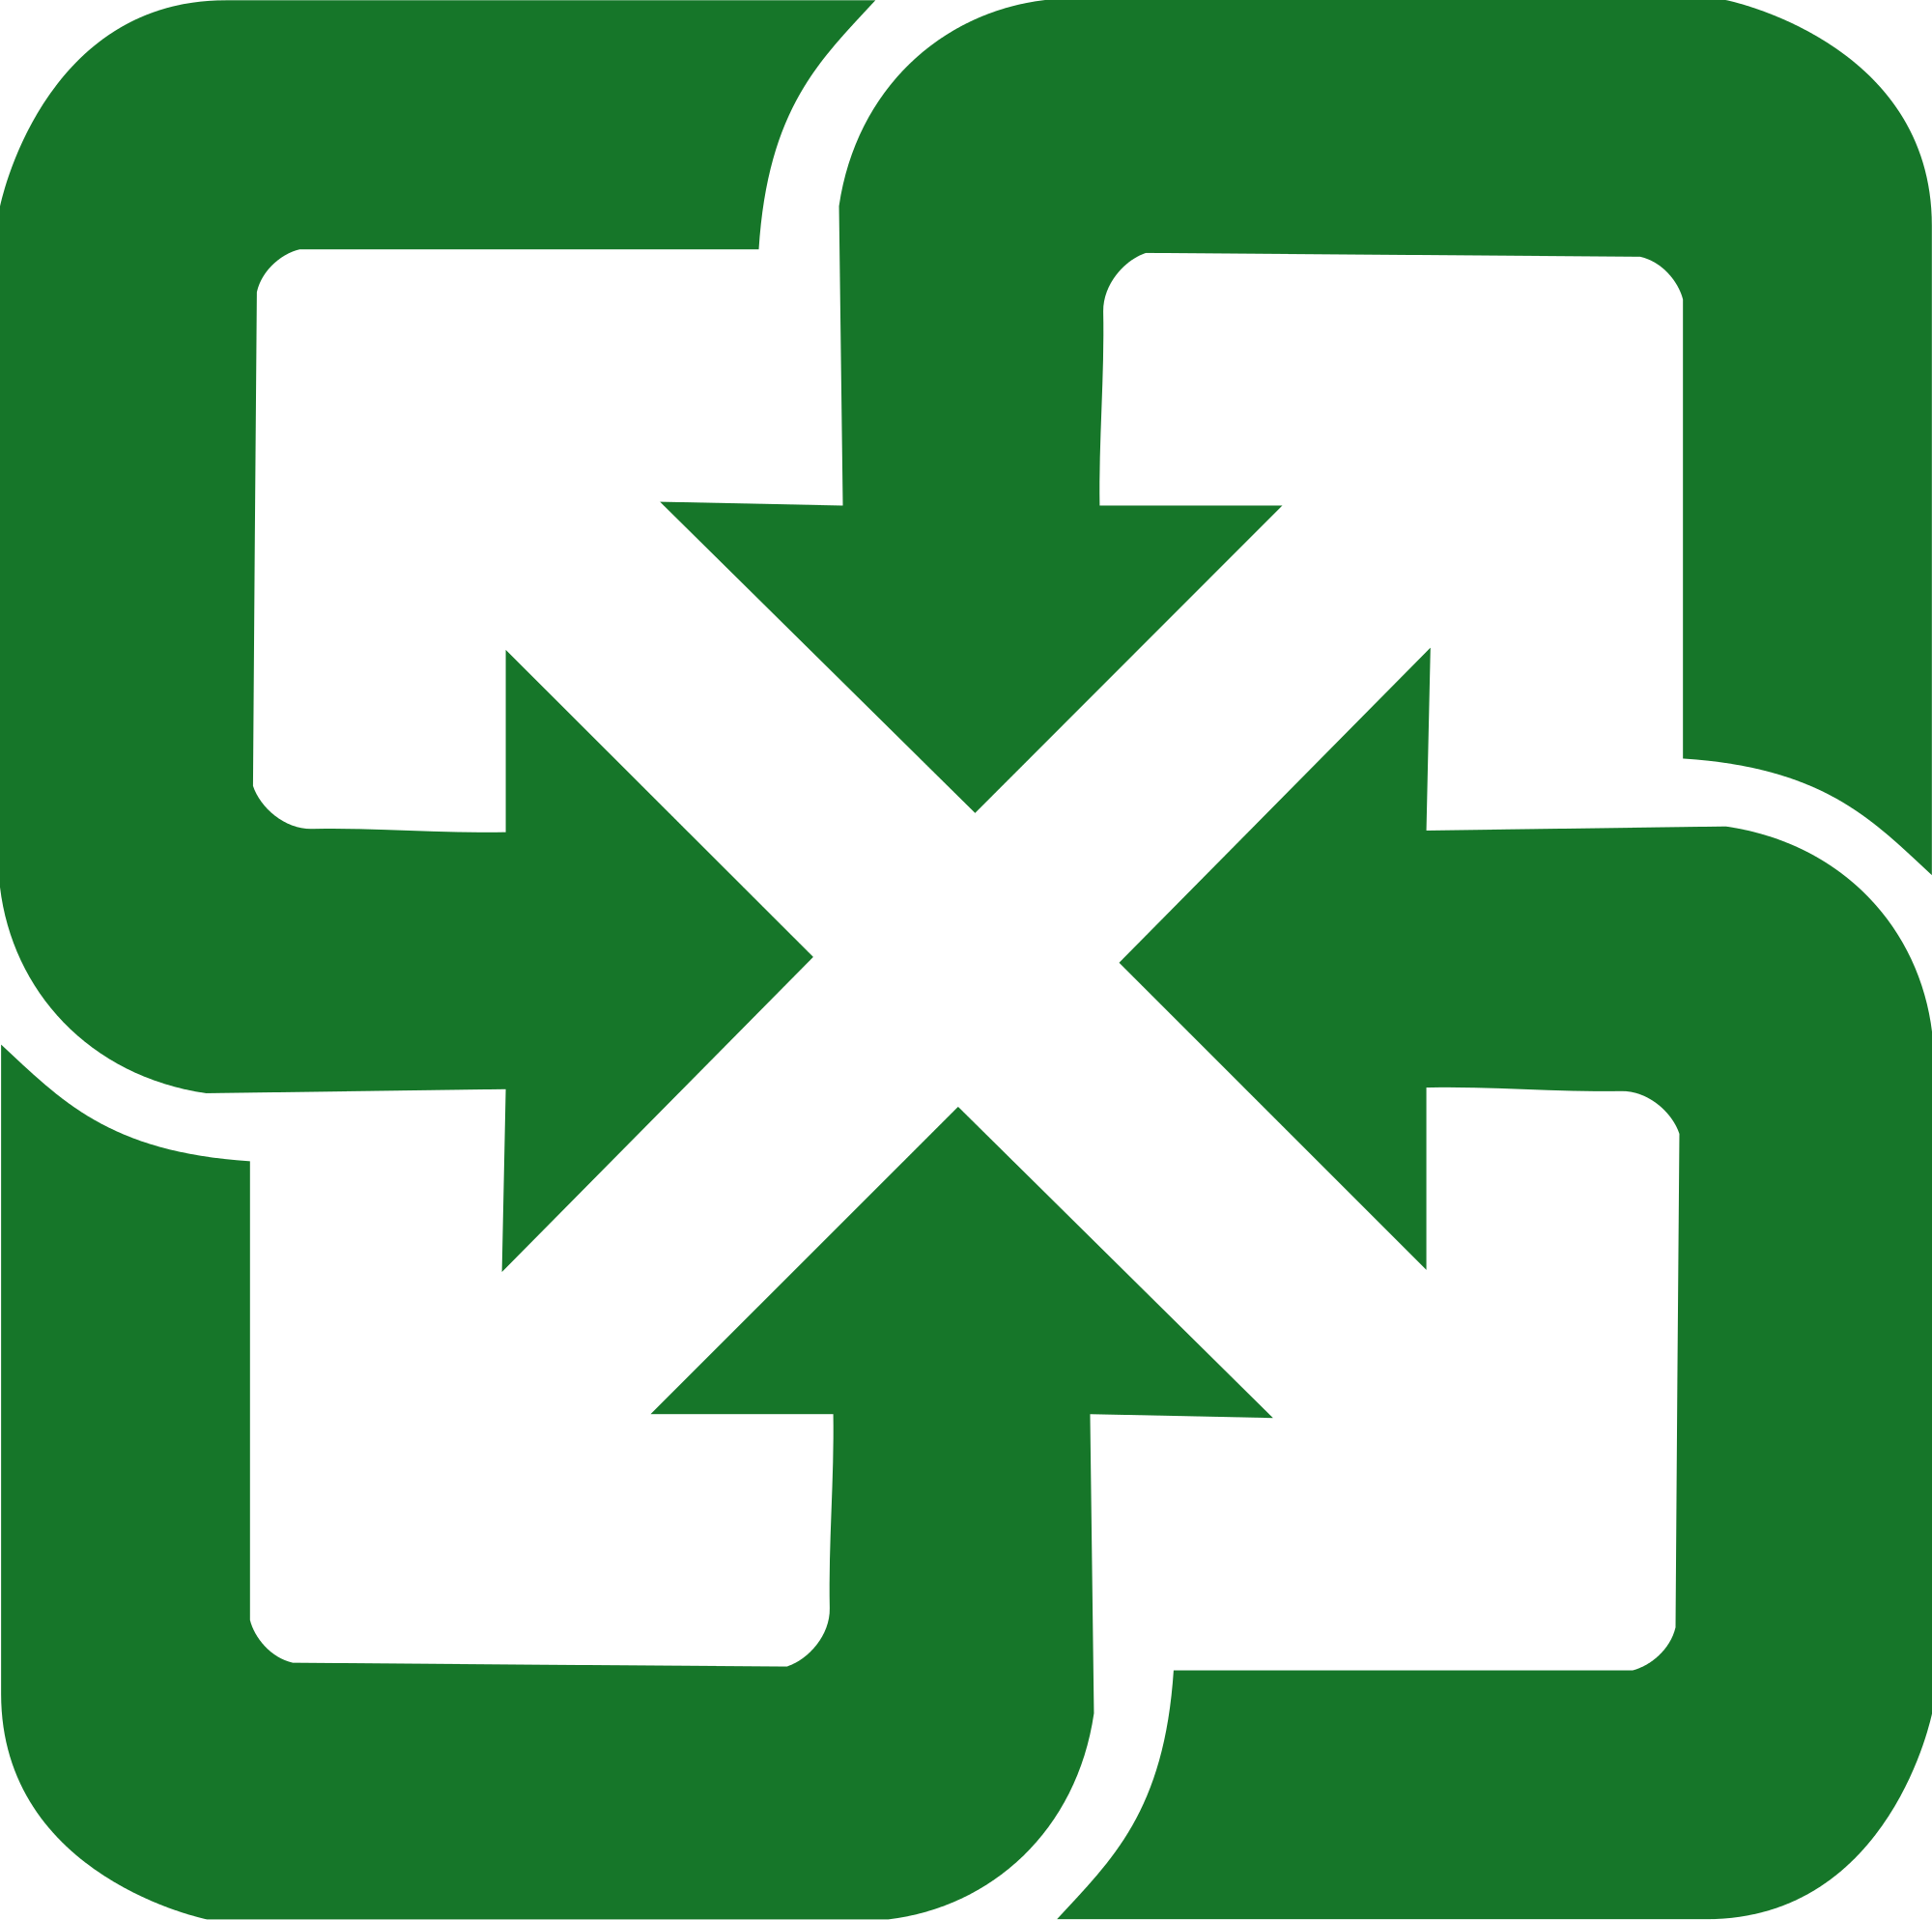 Codes Symbol Recycling Recycle Logo Taiwan PNG Image